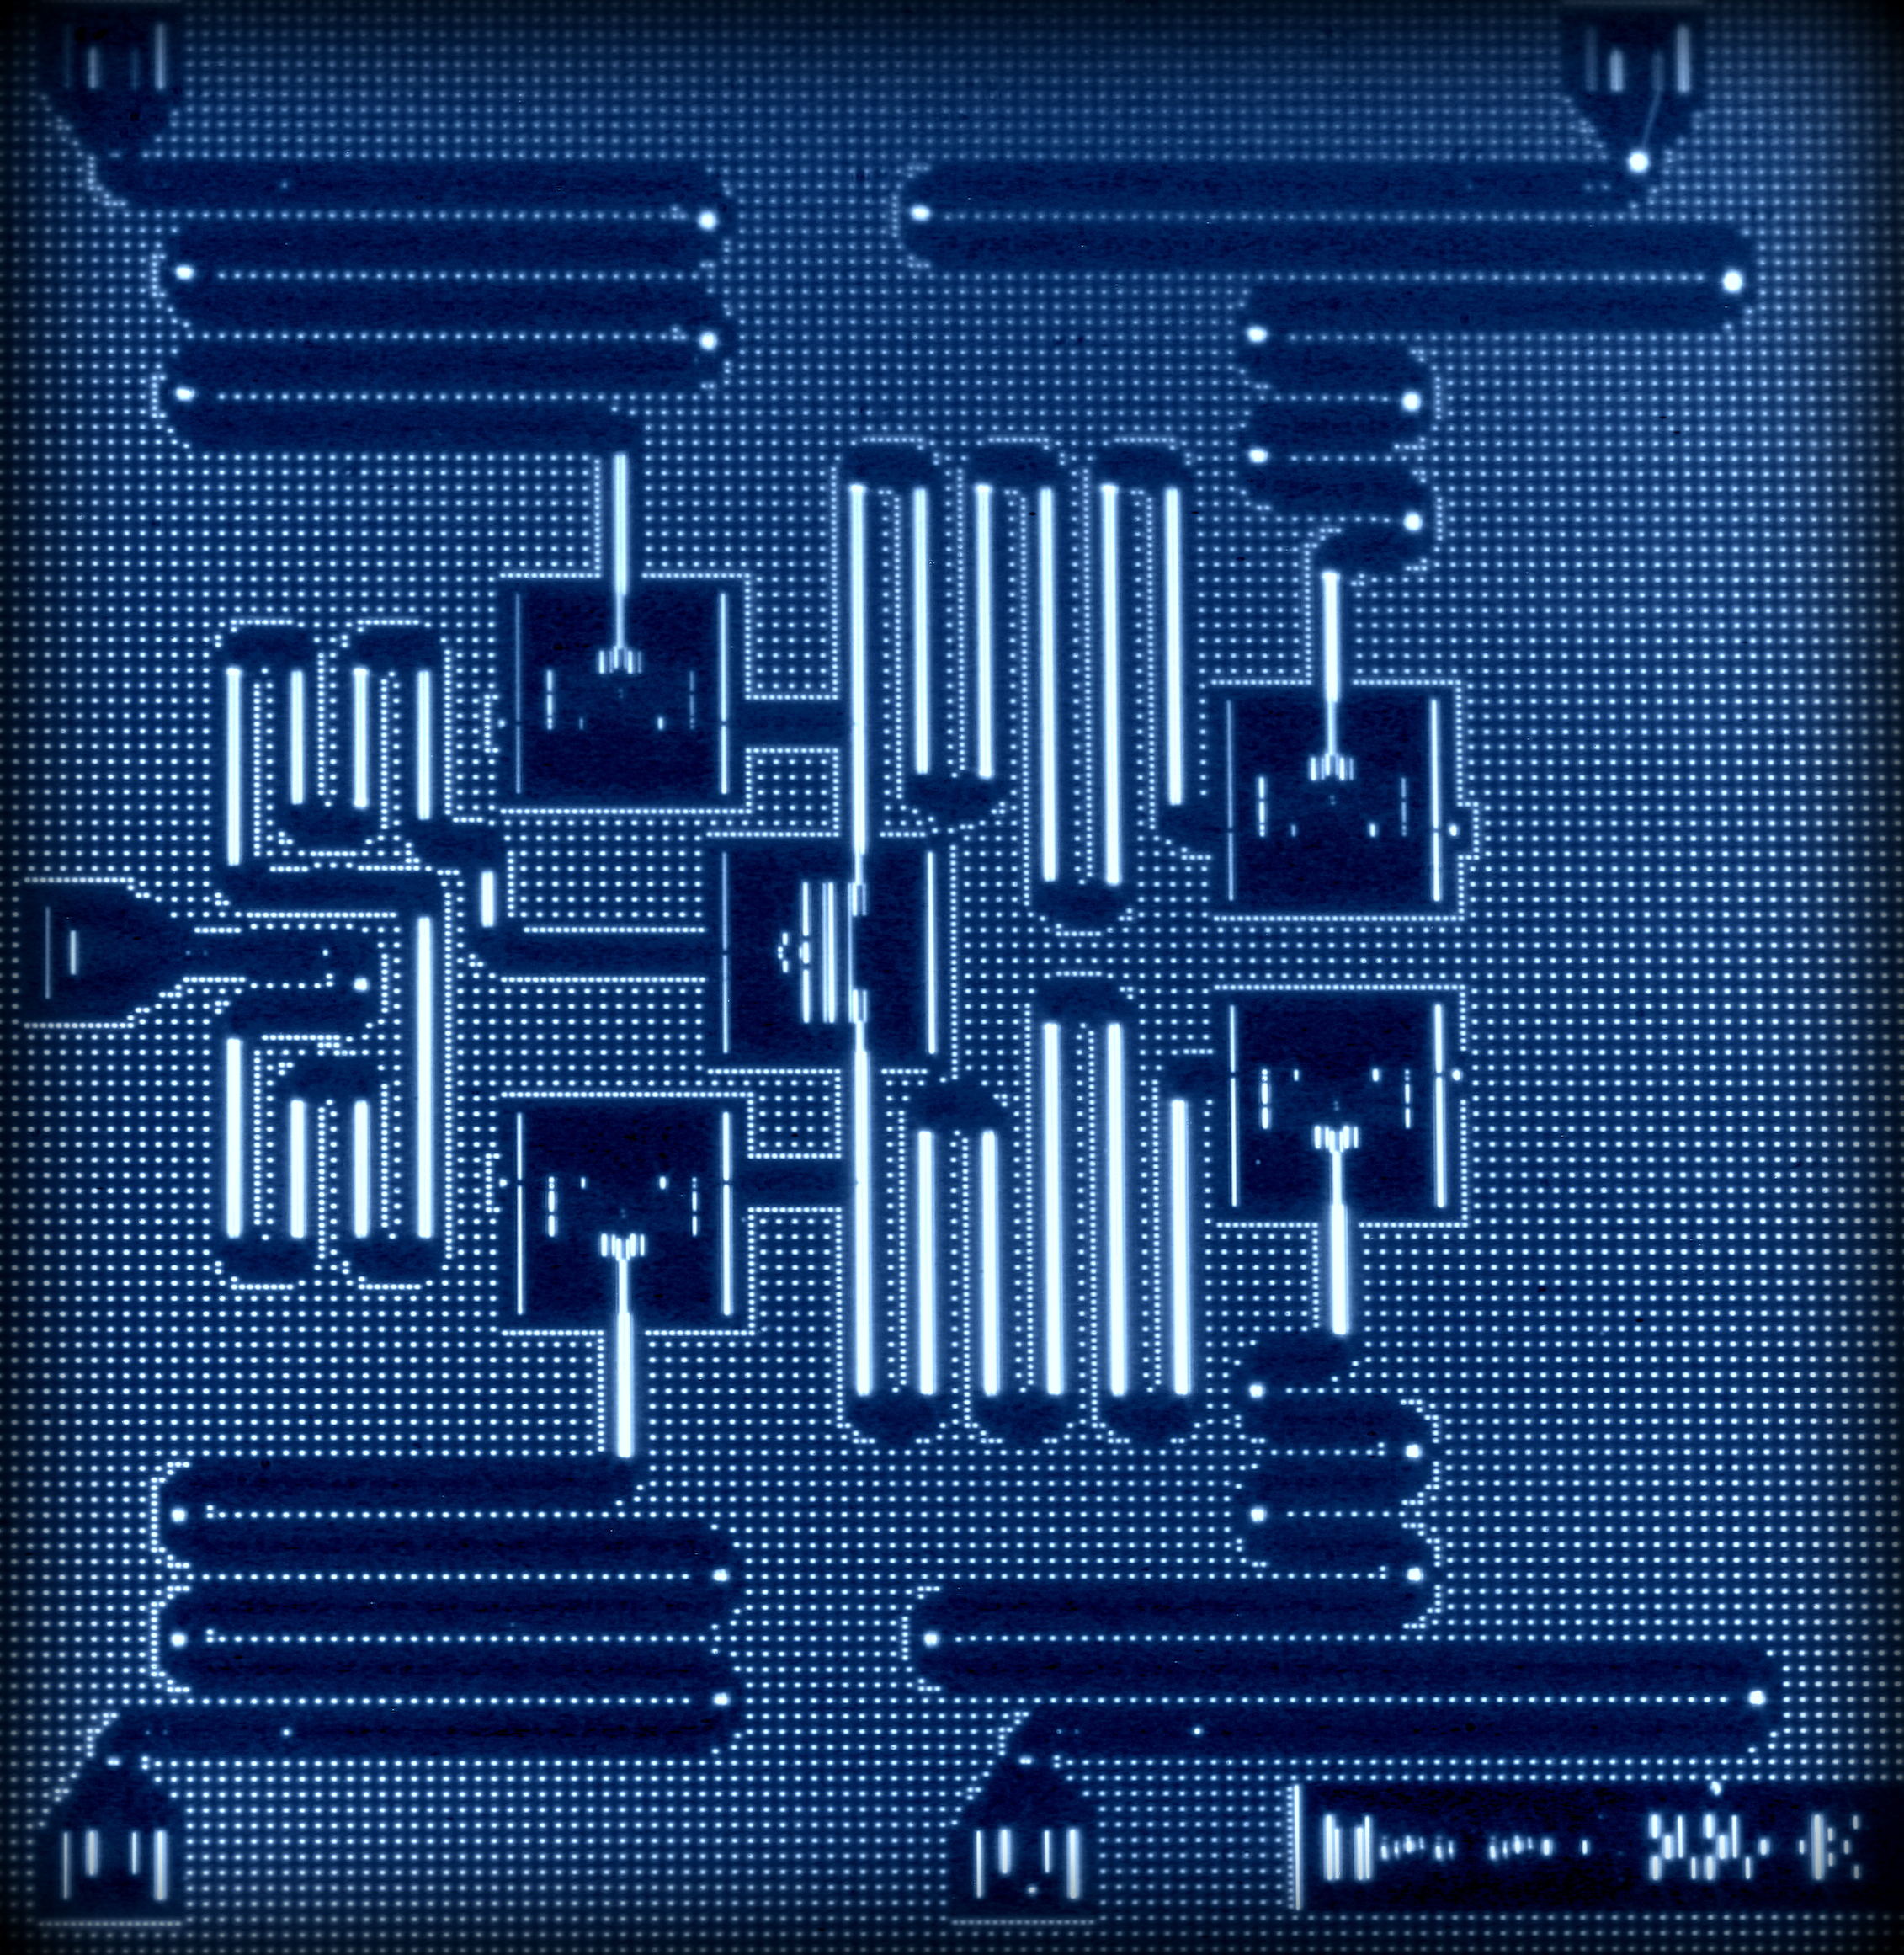 Layout of IBM's five superconducting quantum bit device.